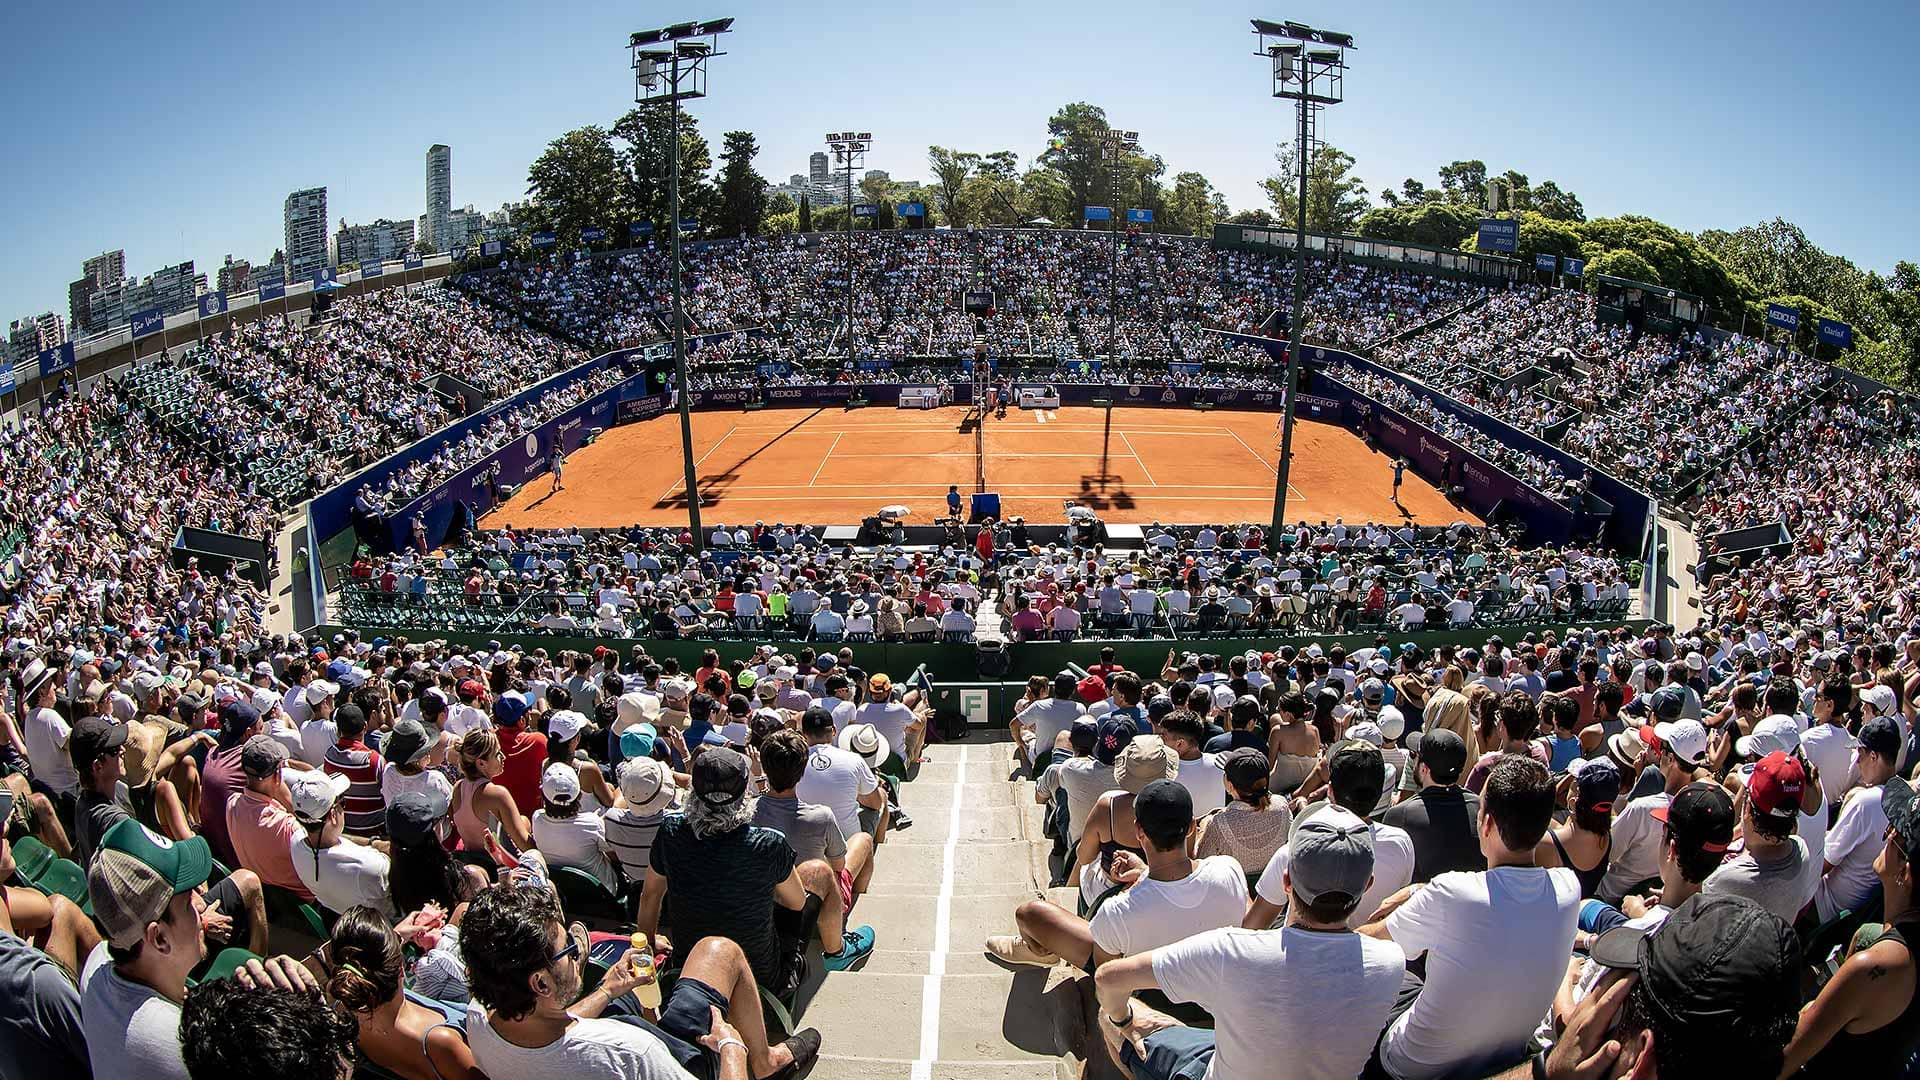 Argentina Open, an ATP 250 tennis tournament in Buenos Aires